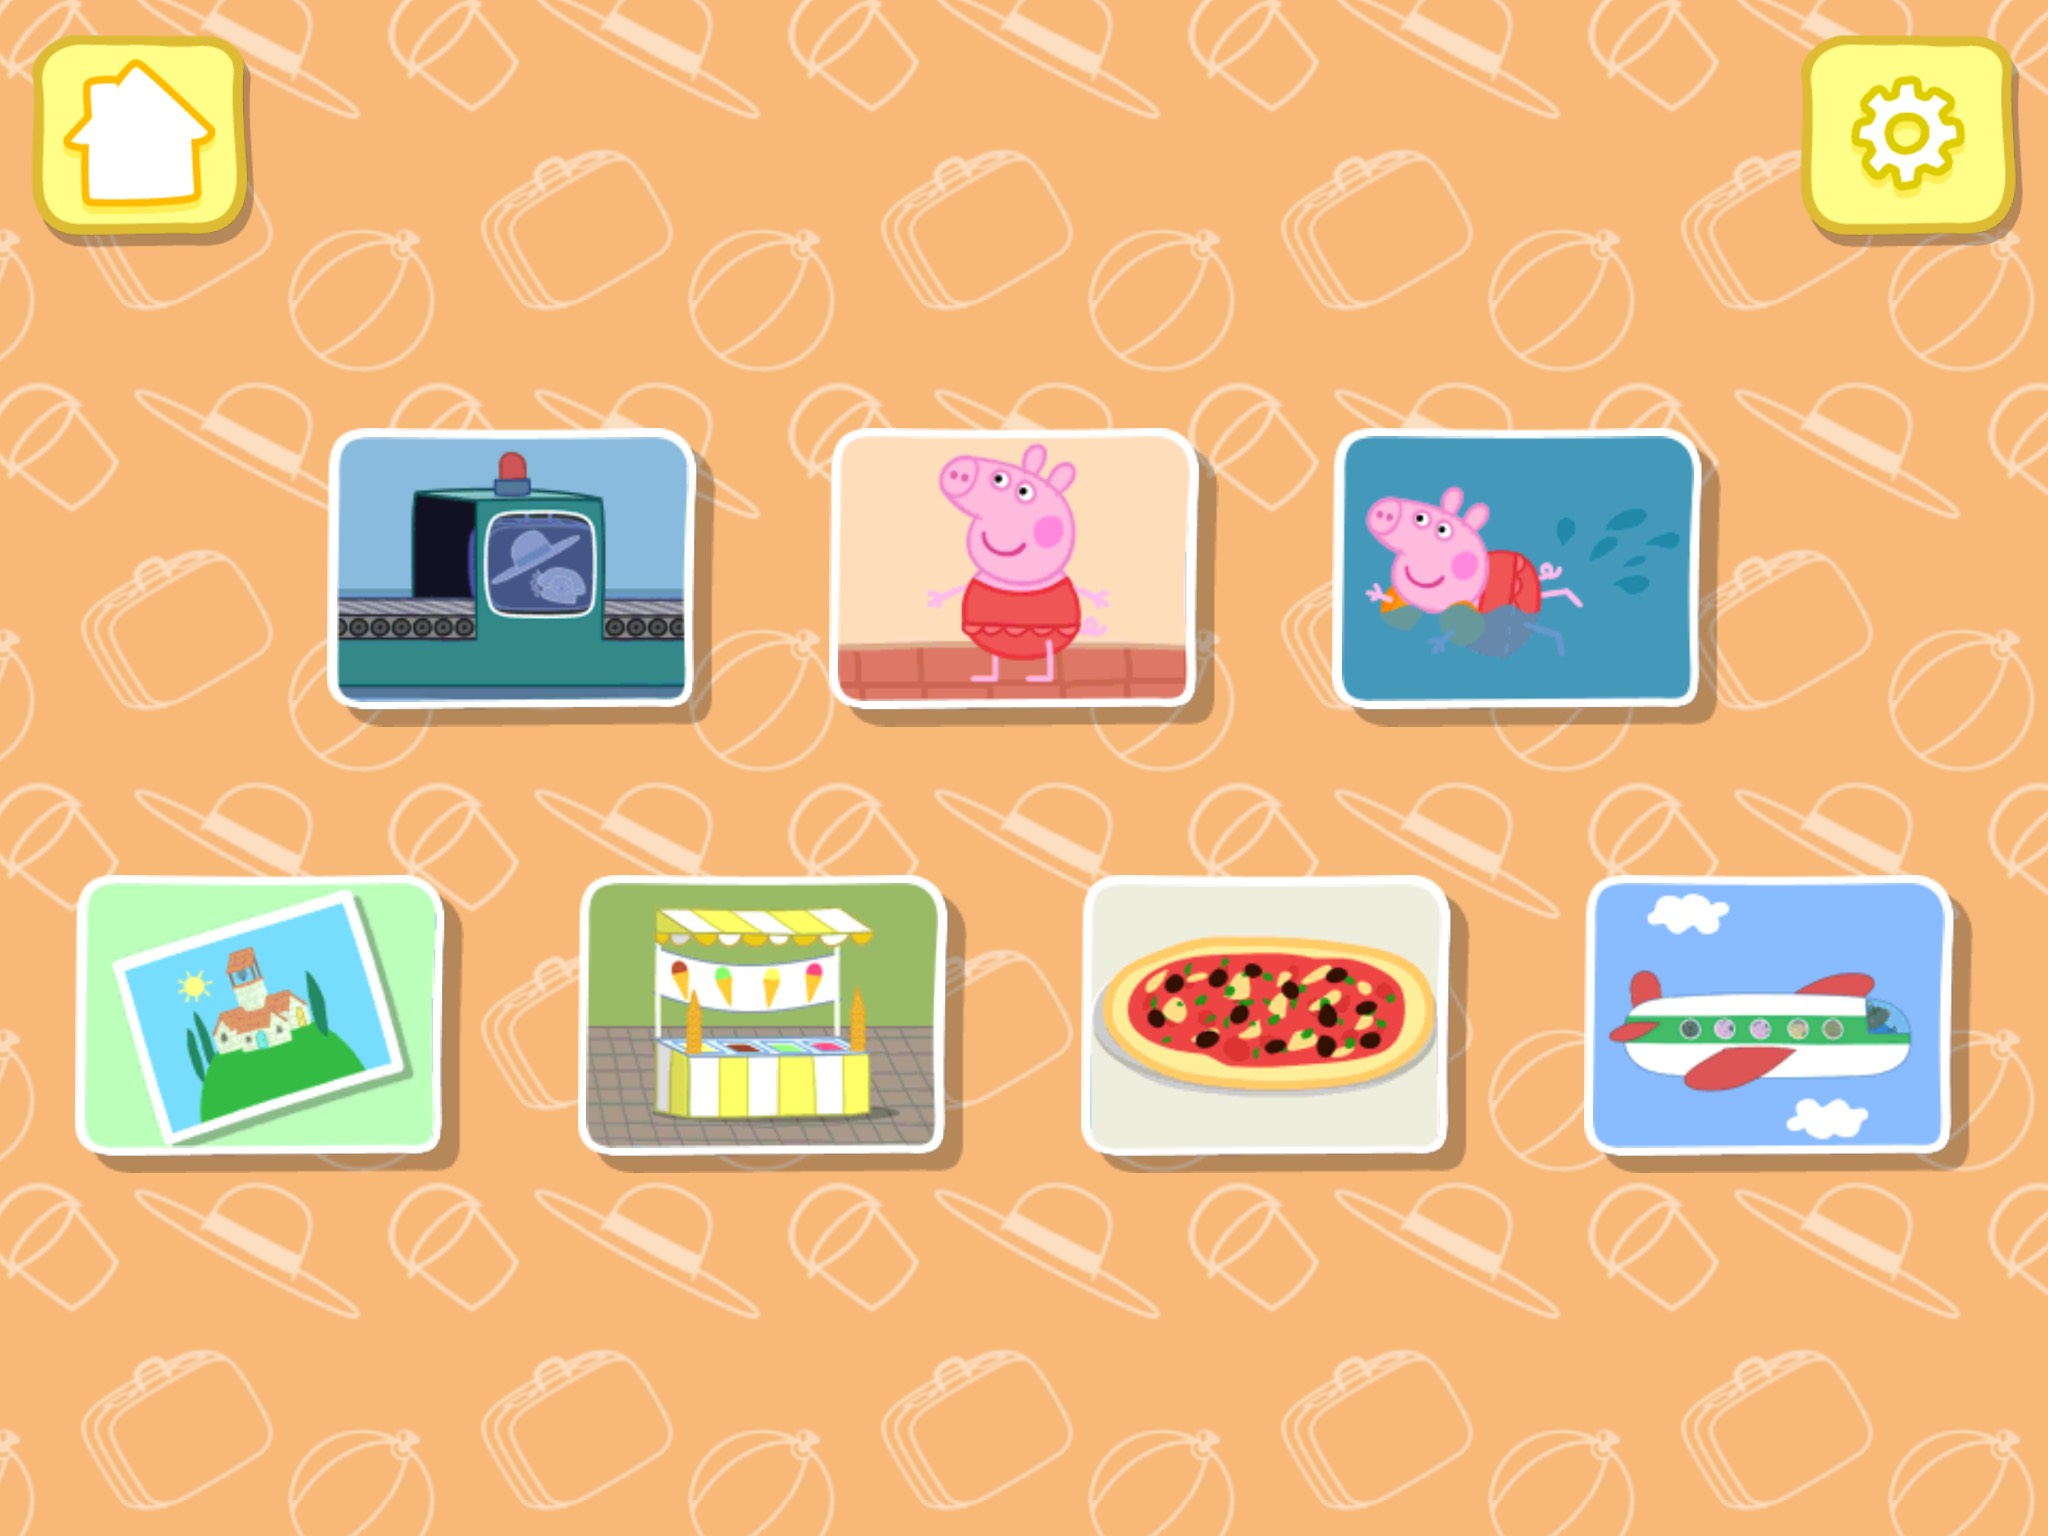 Screenshot of Peppa Pig app displaying screen with 7 activities, home and settings buttons.